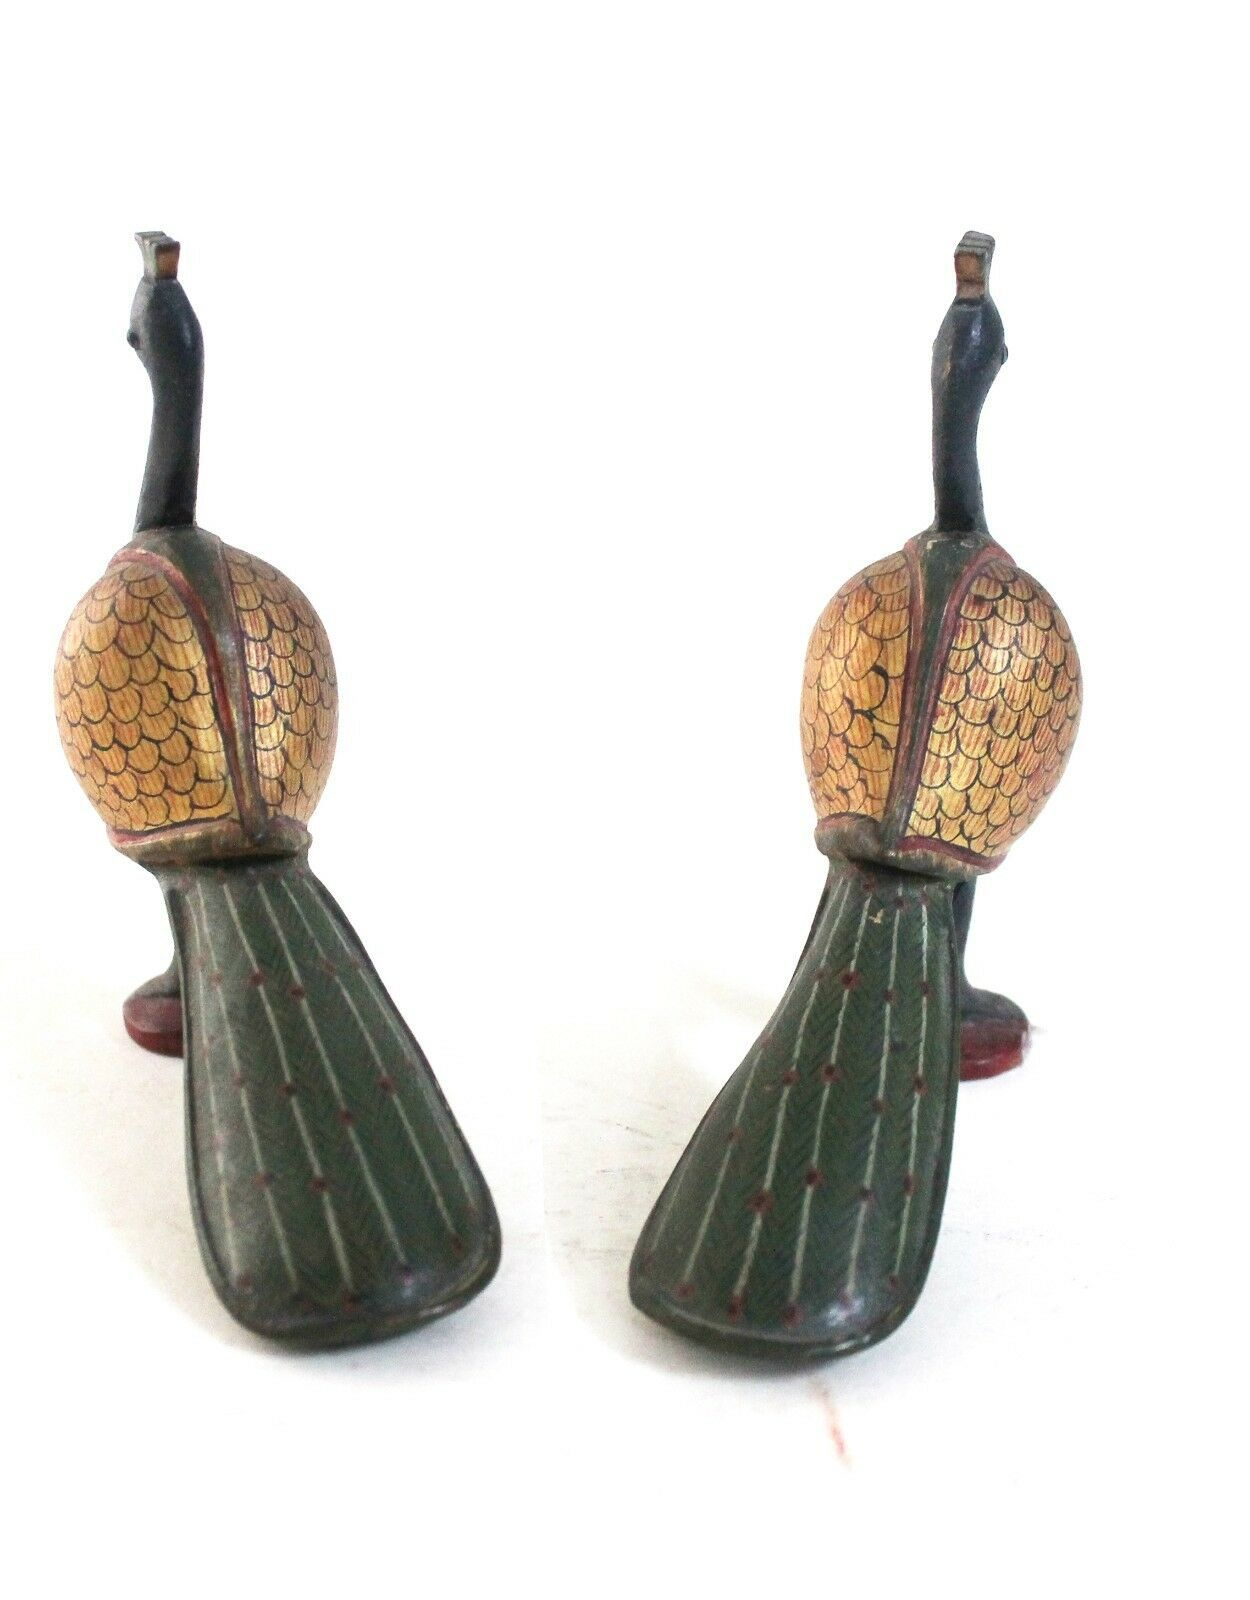 Peacock Pair Pieces Handcrafted Wooden Decorative Home Decor Vintage US665WH